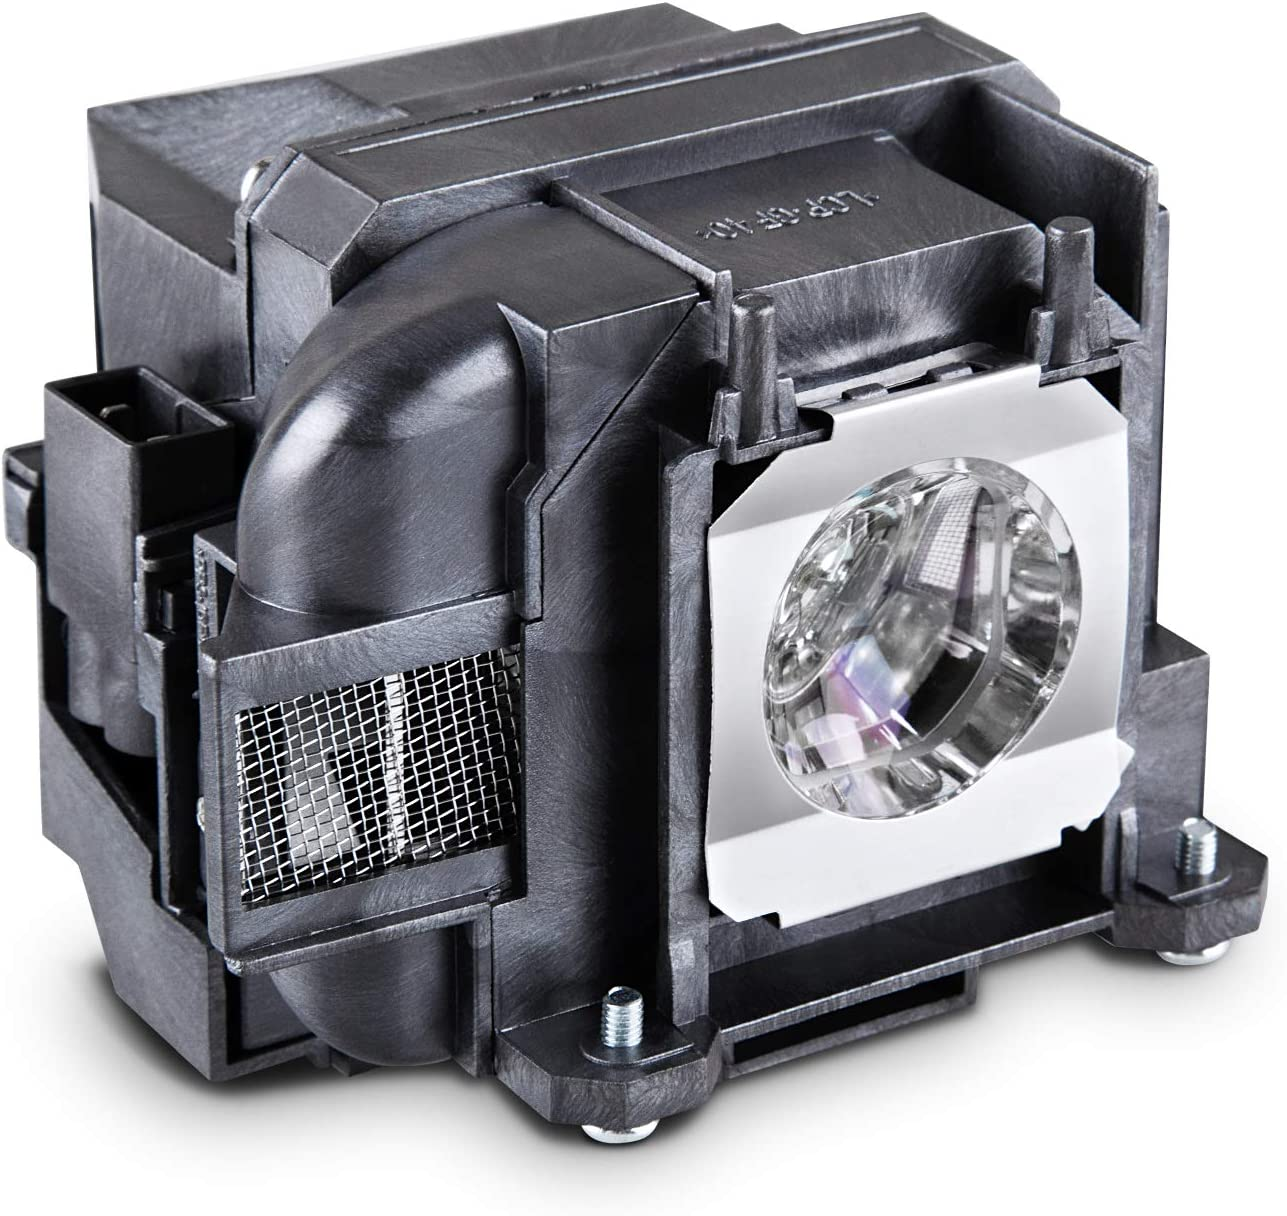 OMAIC V13H010L78 Projector Lamp for Epson ELPLP78 PowerLite Home Cinema 2030 2040 2045 2000 725HD 730HD 740HD VS230 VS330 VS335W EB-X18 EB-X24 EH-TW5100 TW5200 TW490 TW570 Projector Replacement Bulb